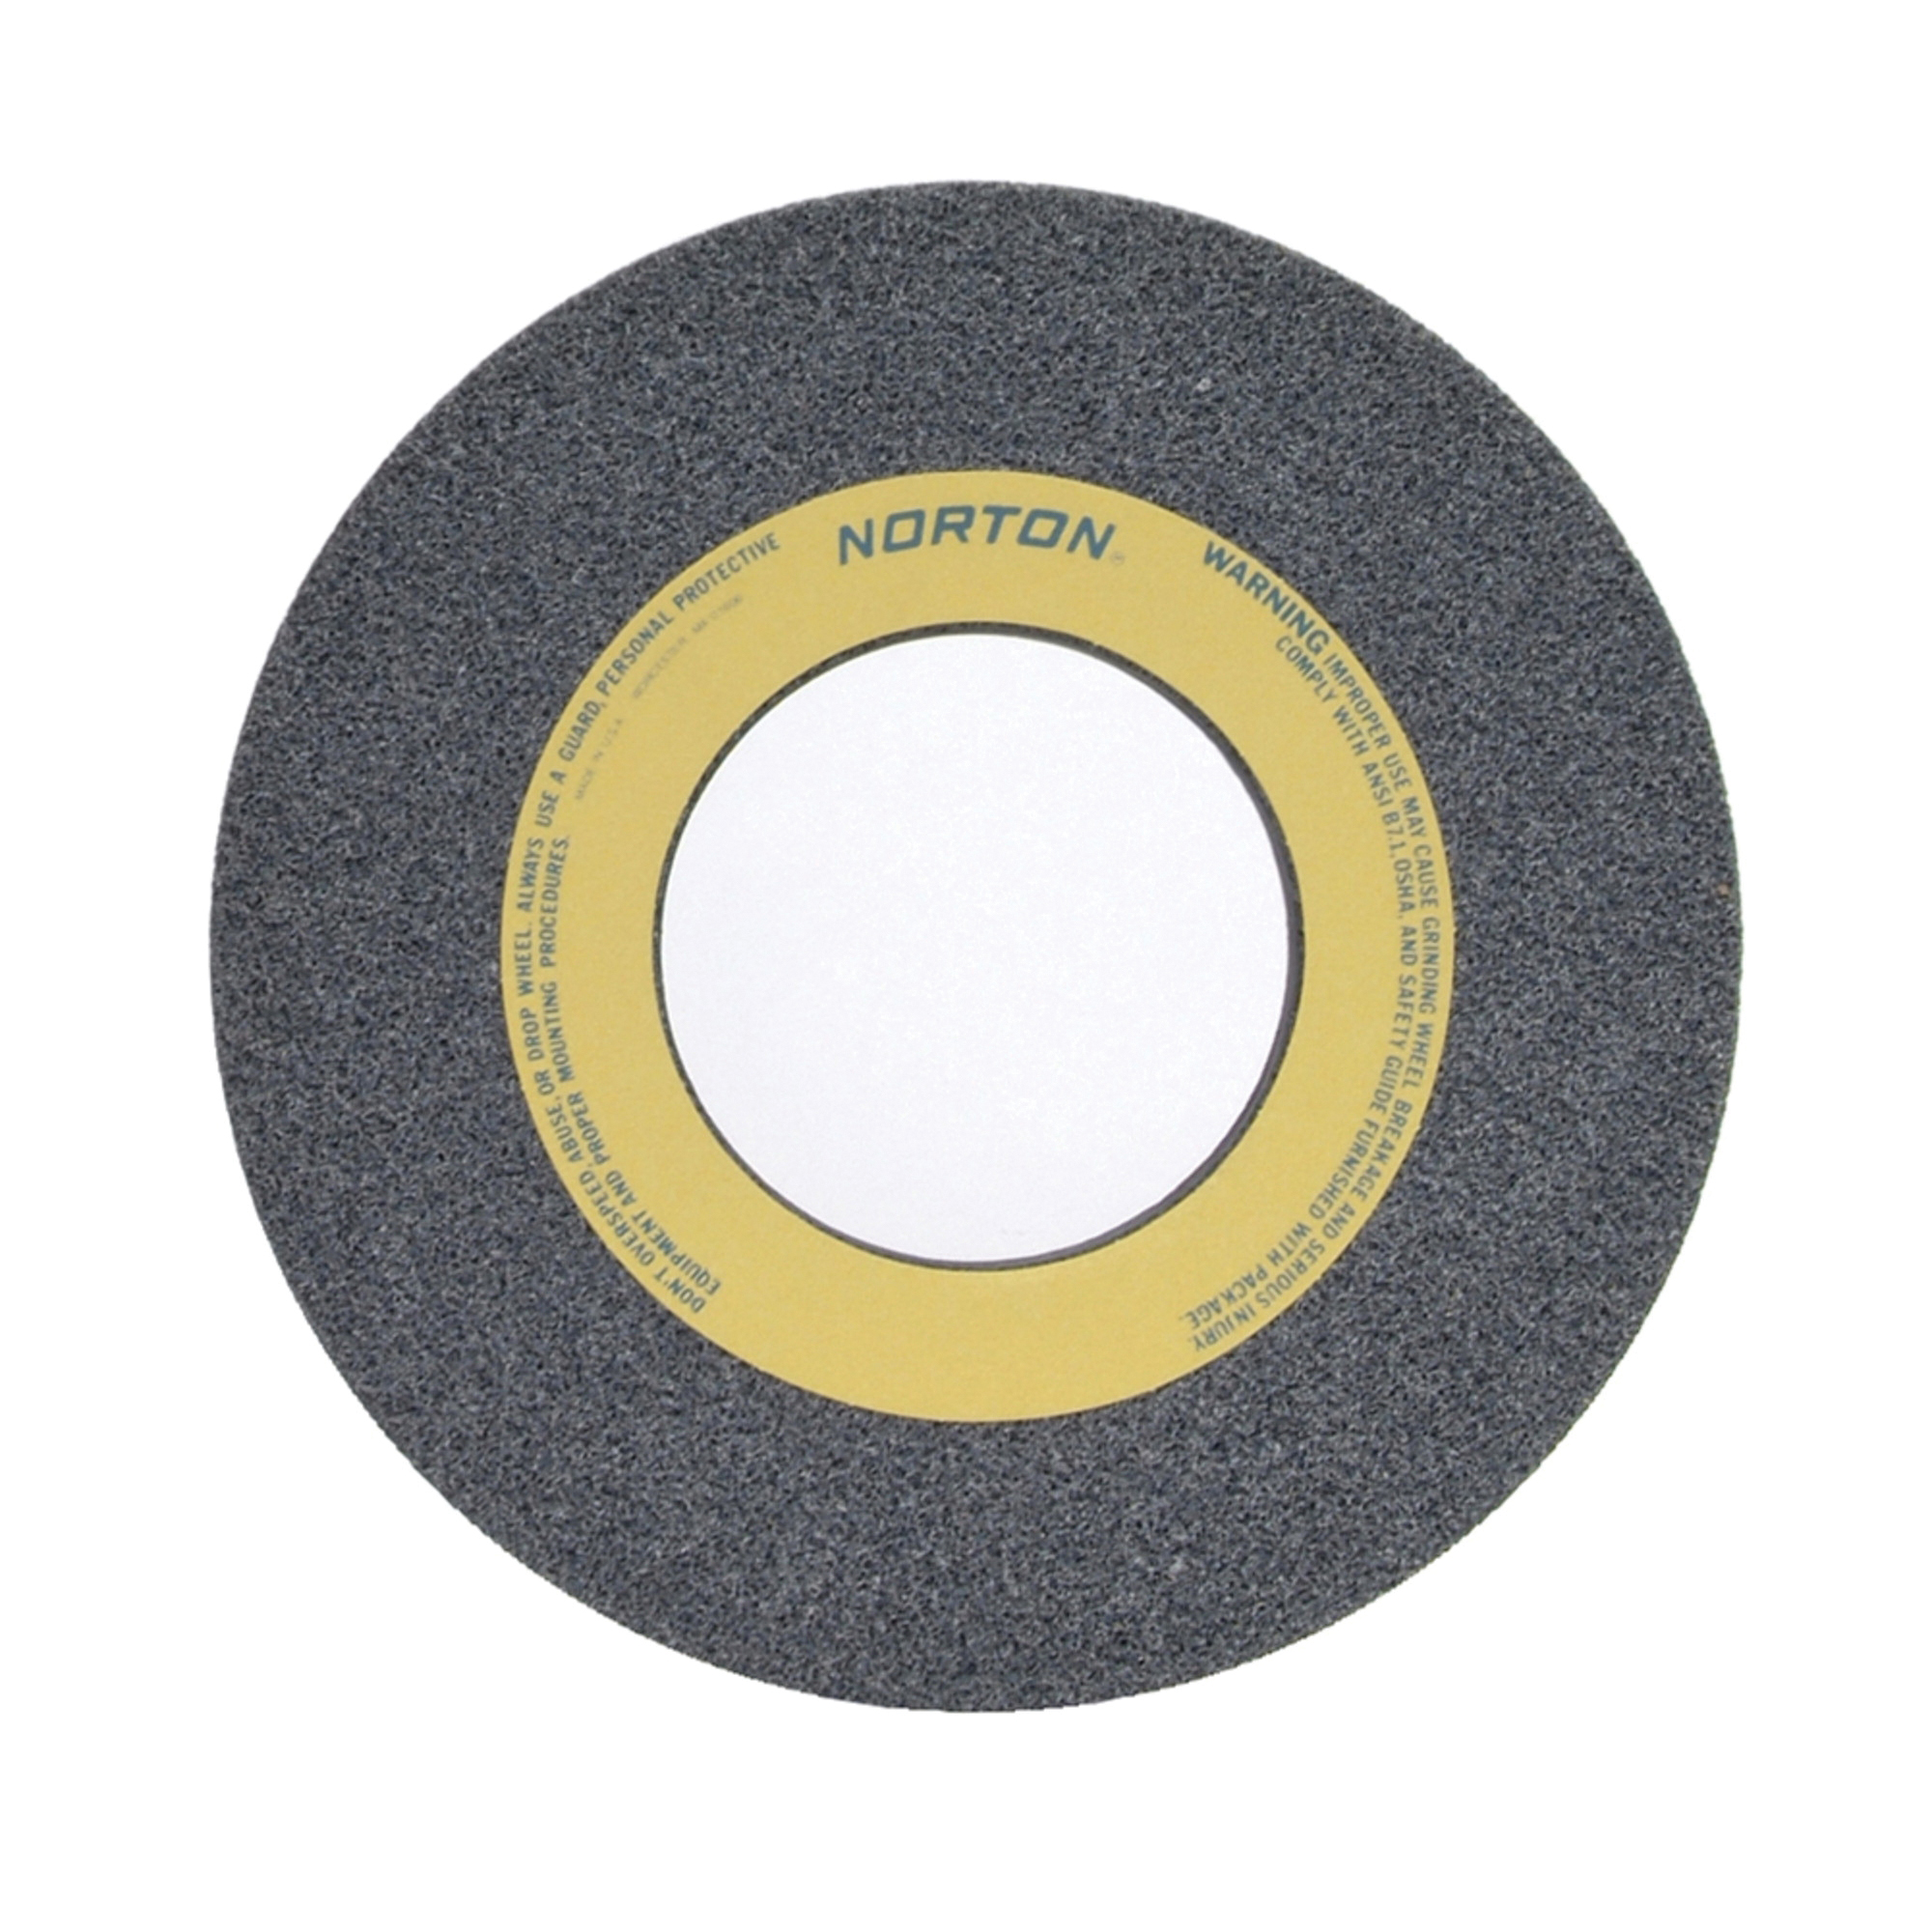 Norton® 66253364509 32A Straight Toolroom Wheel, 14 in Dia x 2 in THK, 5 in Center Hole, 46 Grit, Aluminum Oxide Abrasive